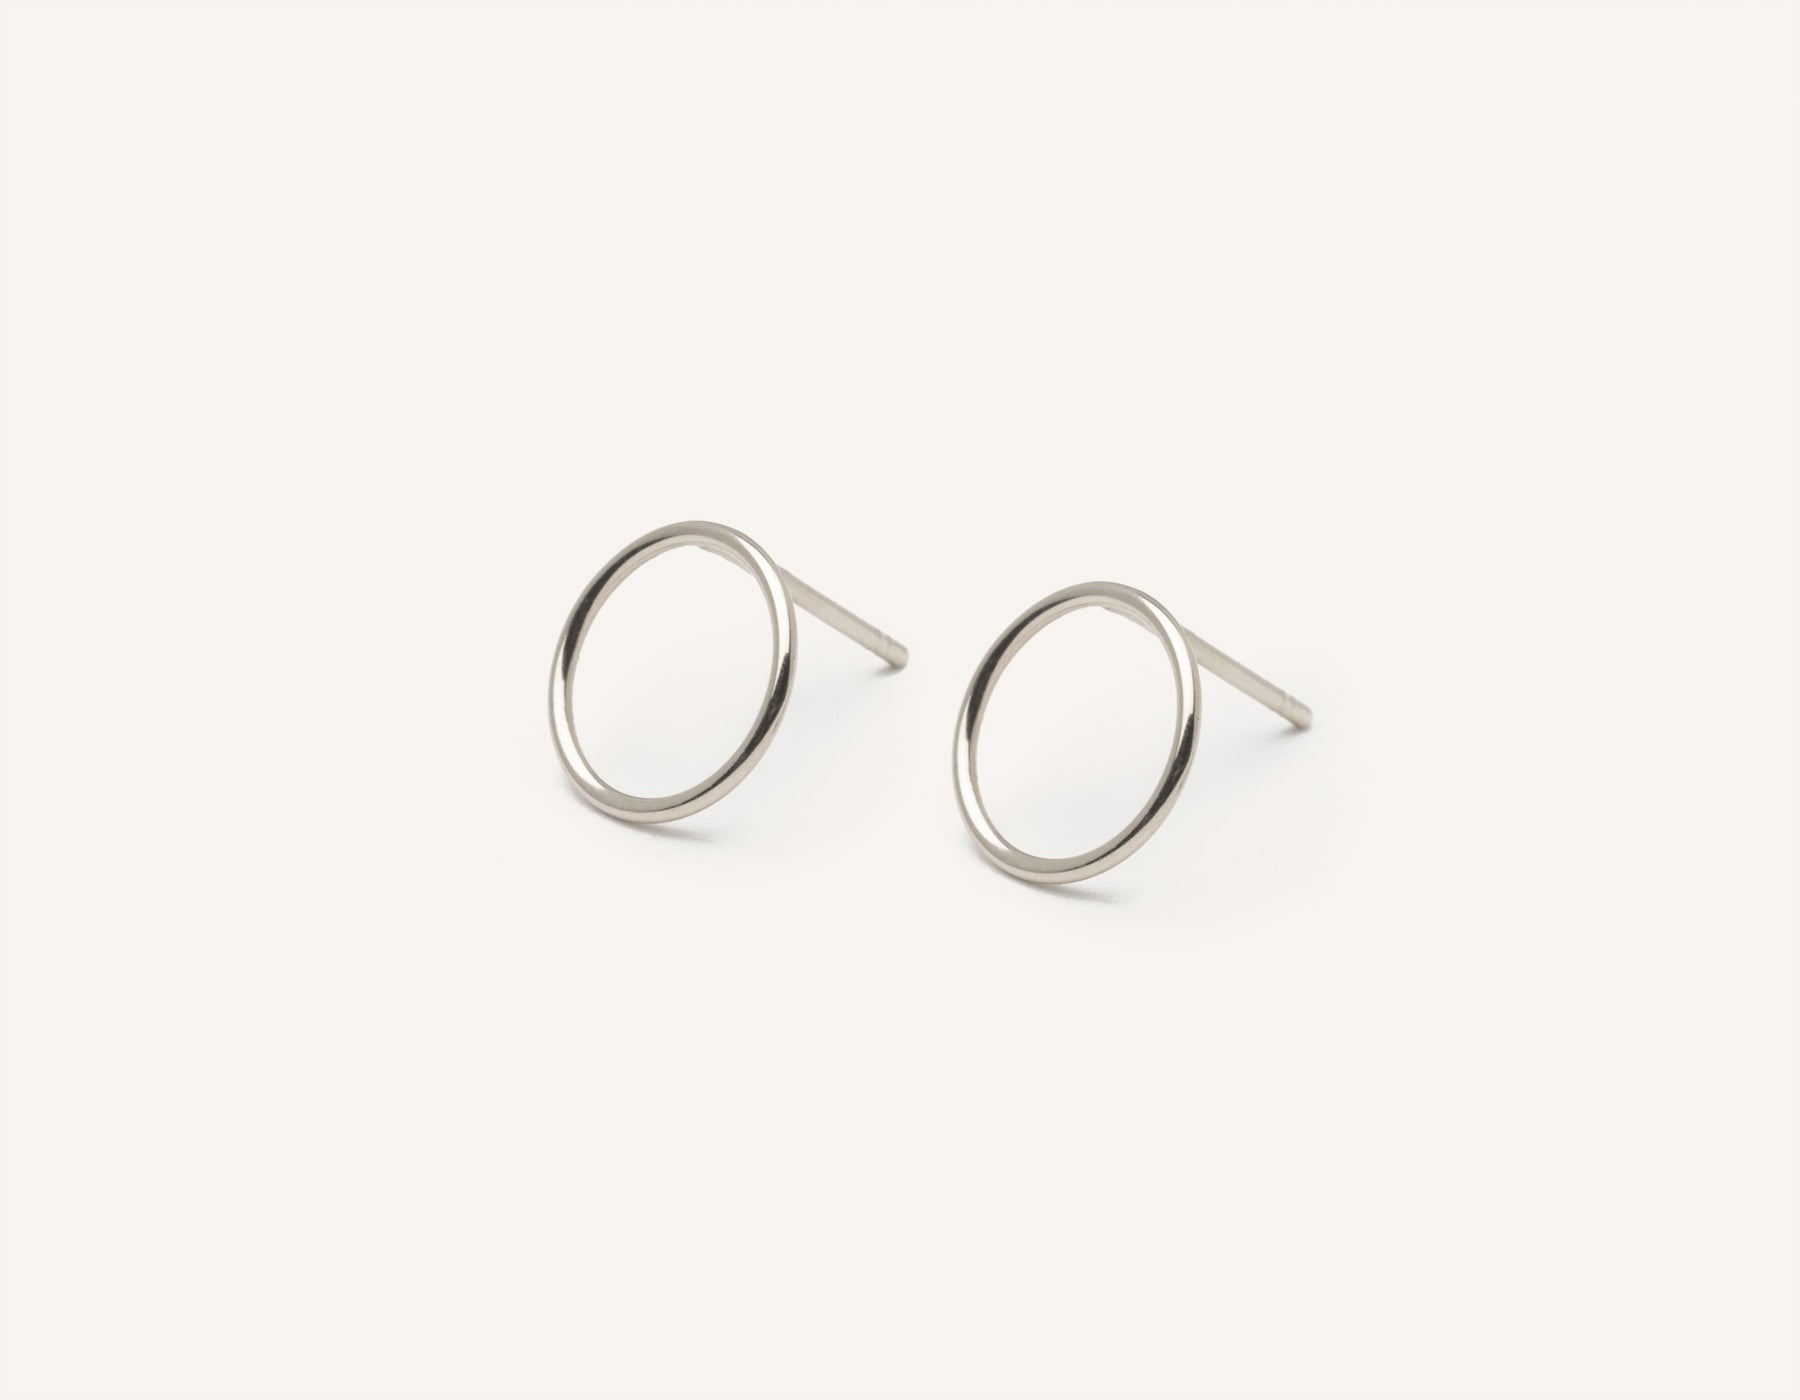 Vrai and Oro modern minimalist Circle Studs 14k solid gold post earrings , 14K White Gold